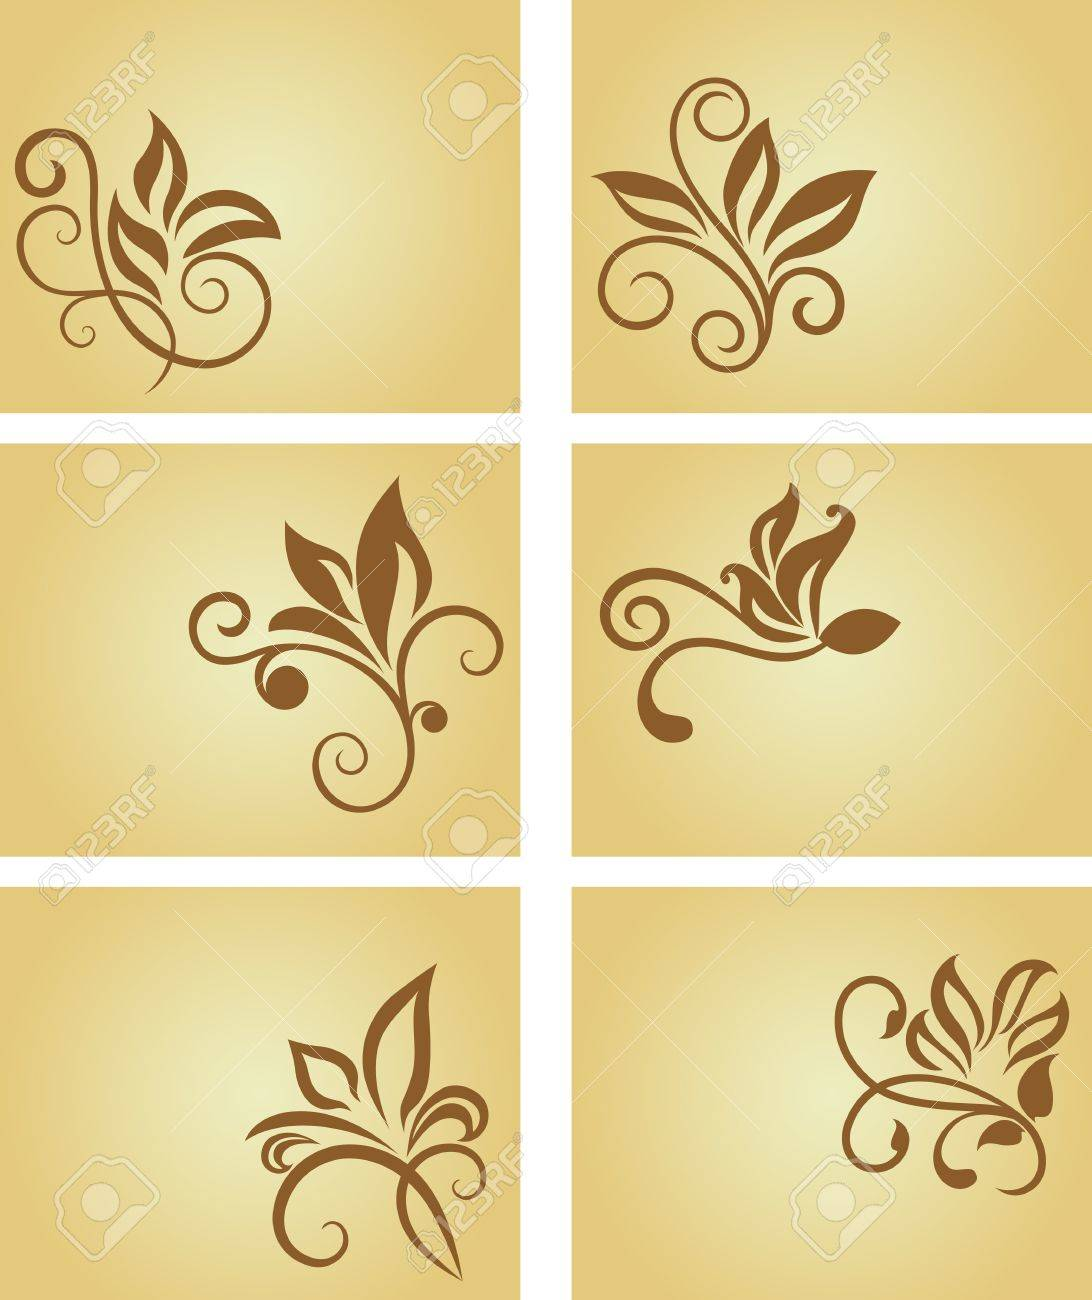 Set of business cards in vintage style for design Stock Vector - 7040775